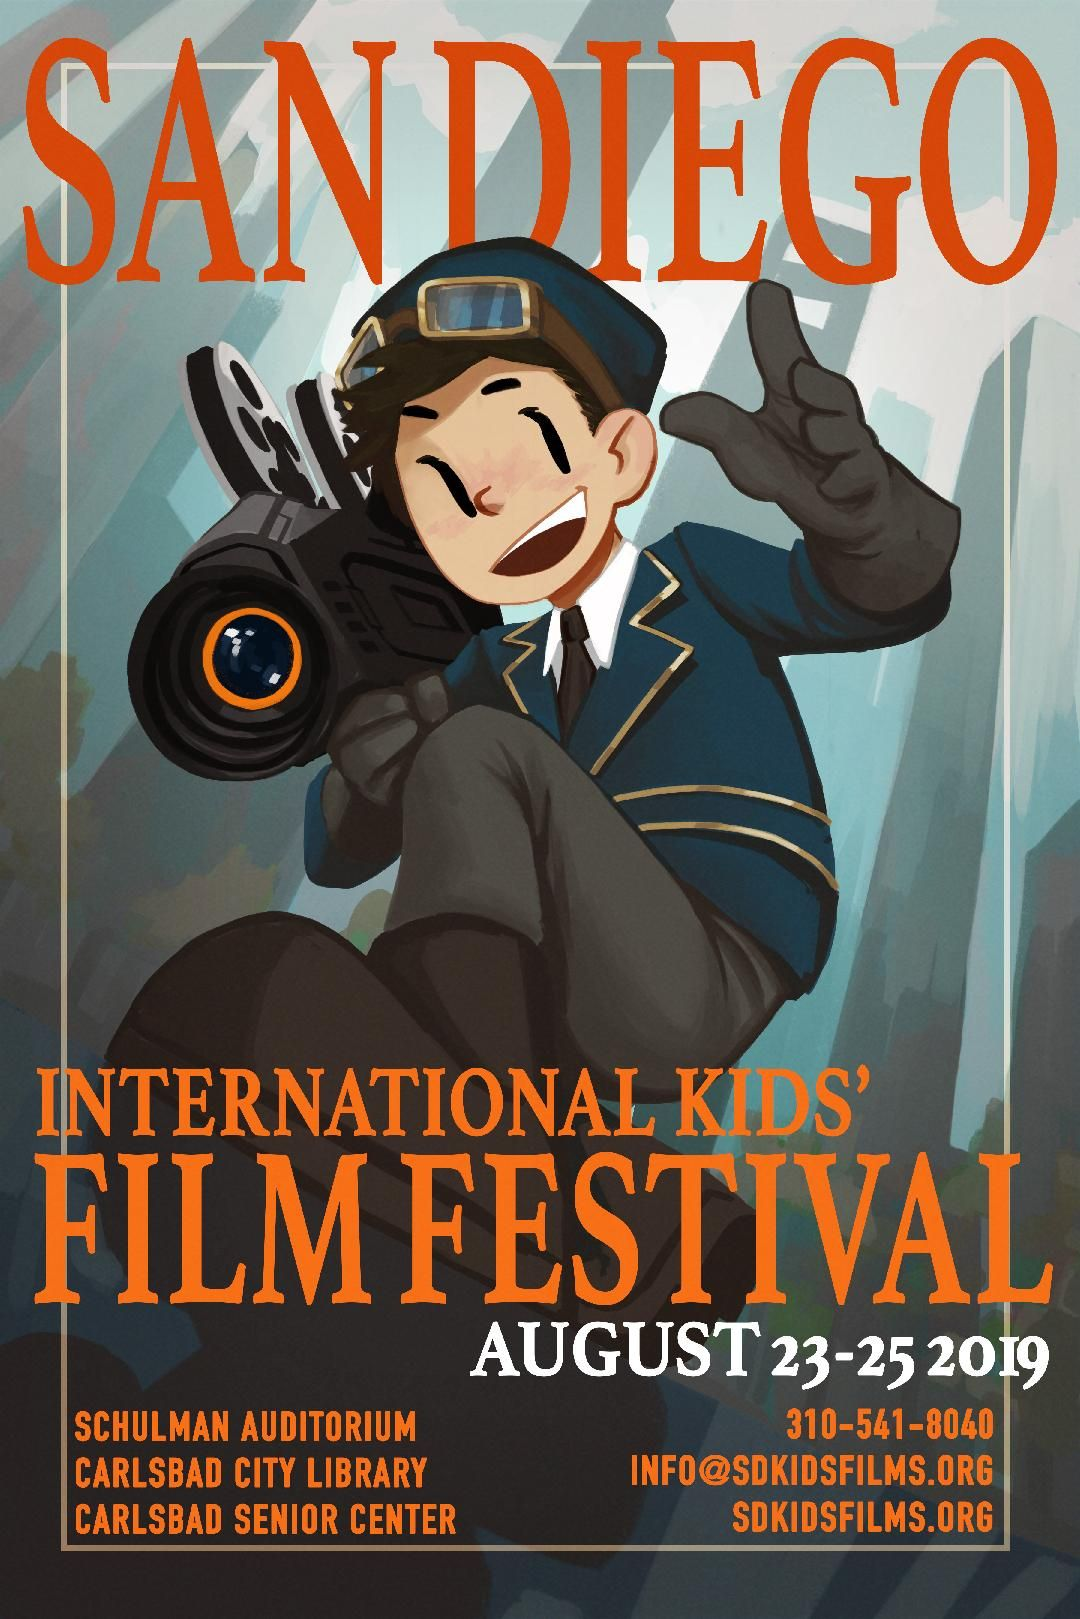 san diego international kids' Film Festival 2019